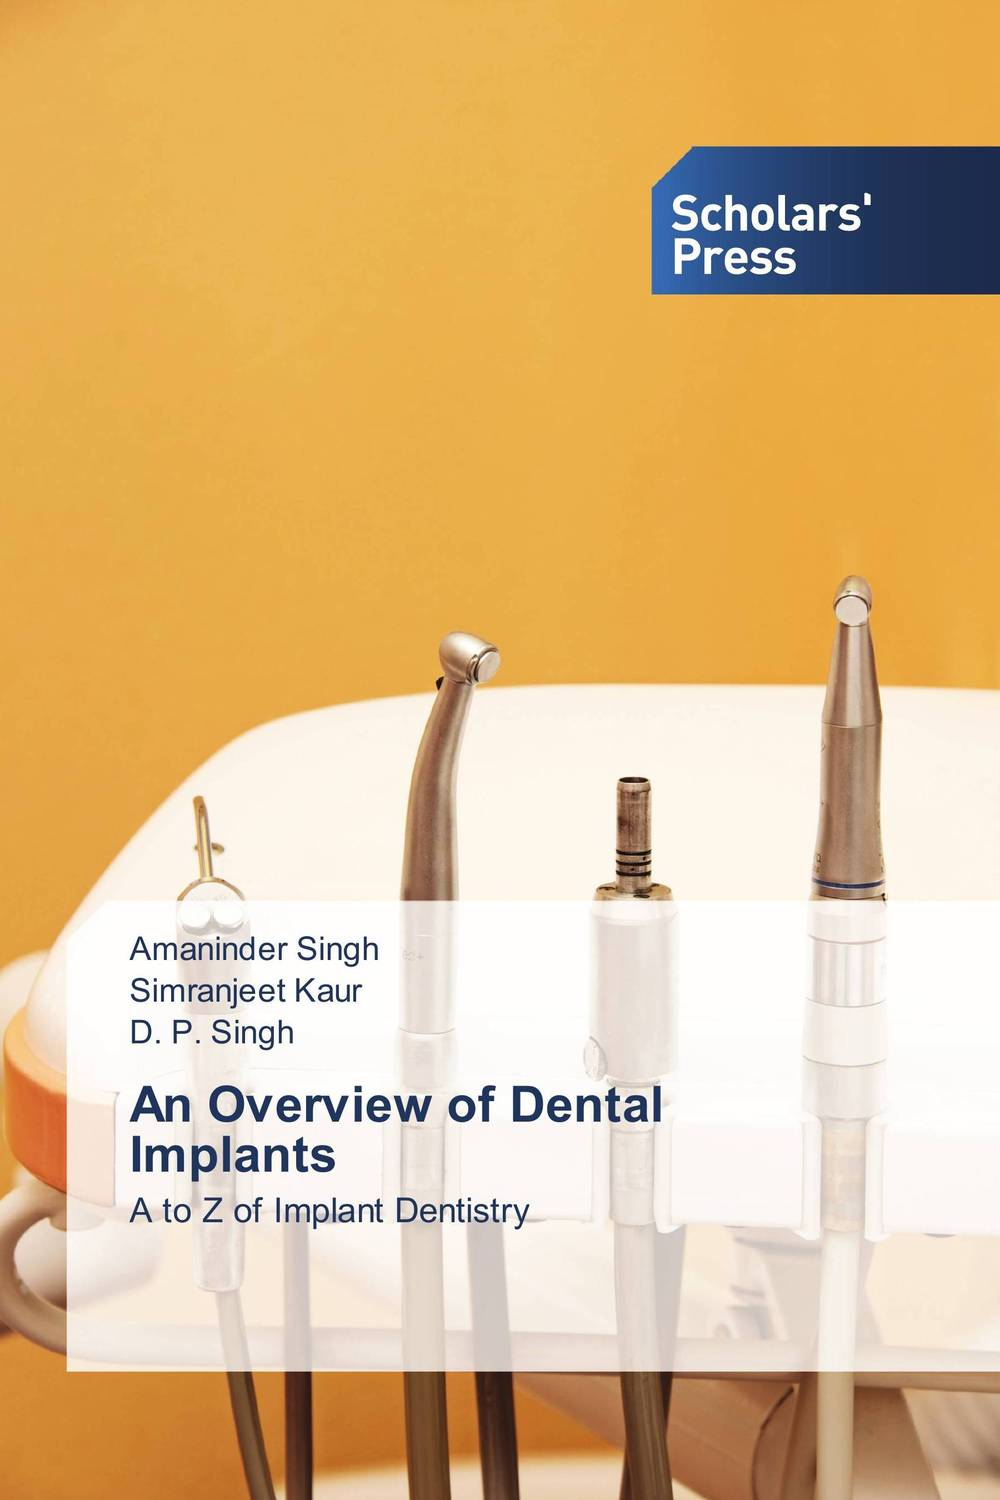 An Overview of Dental Implants driven to distraction